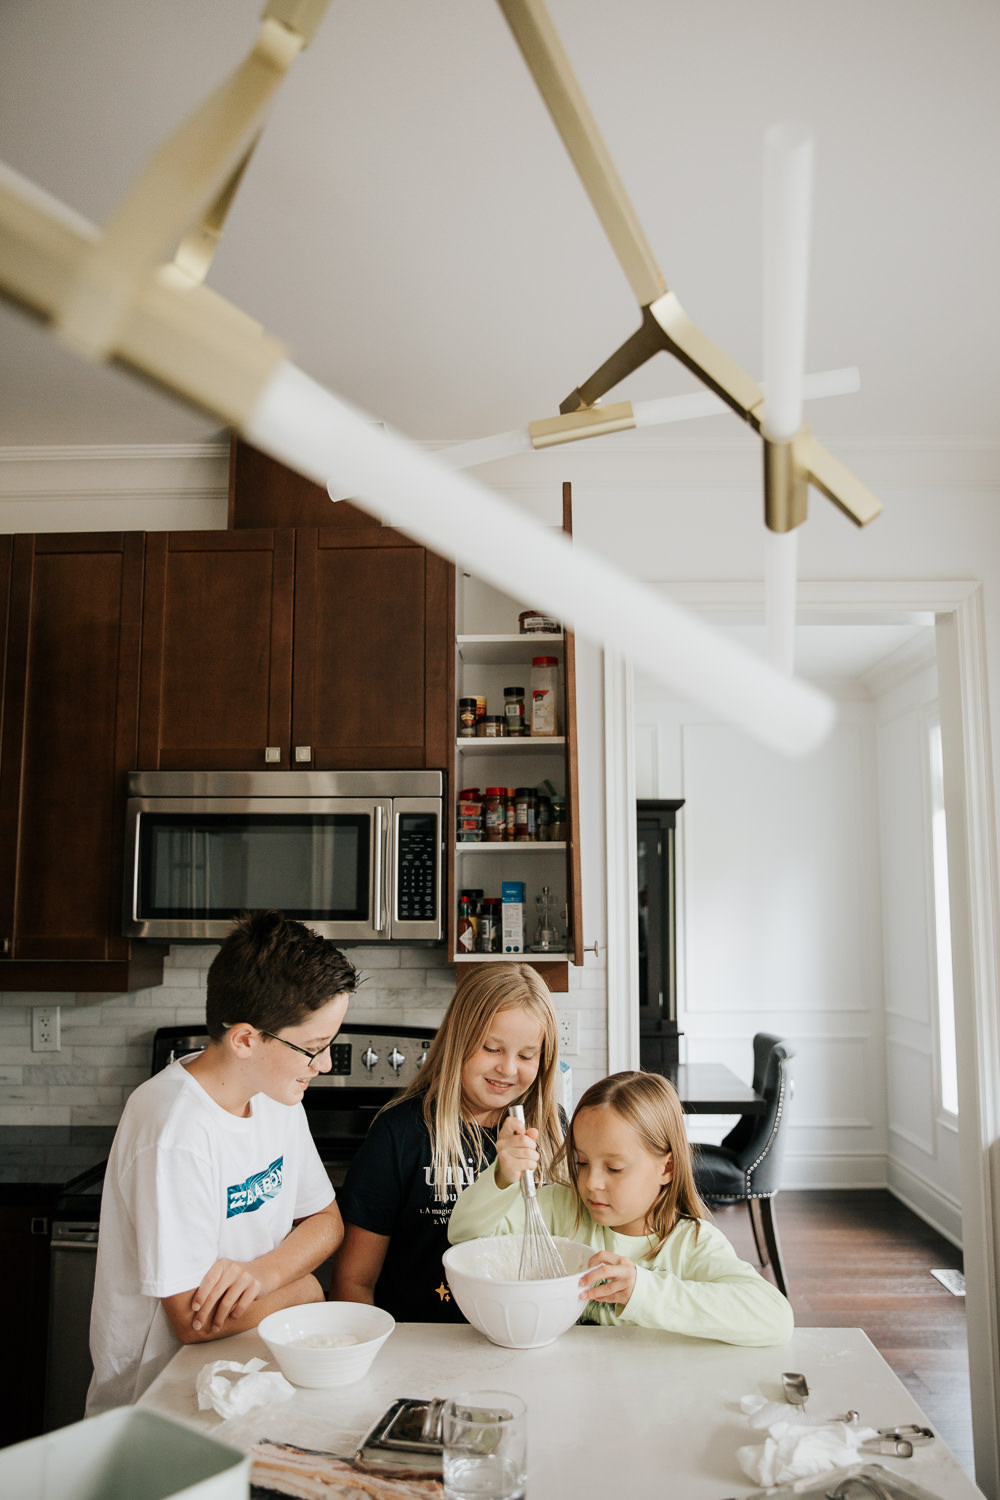 3 children standing at kitchen island mixing pancake batter for family brunch, 8 and 10 year old girls, 13 year old boy - York Region Lifestyle Photos